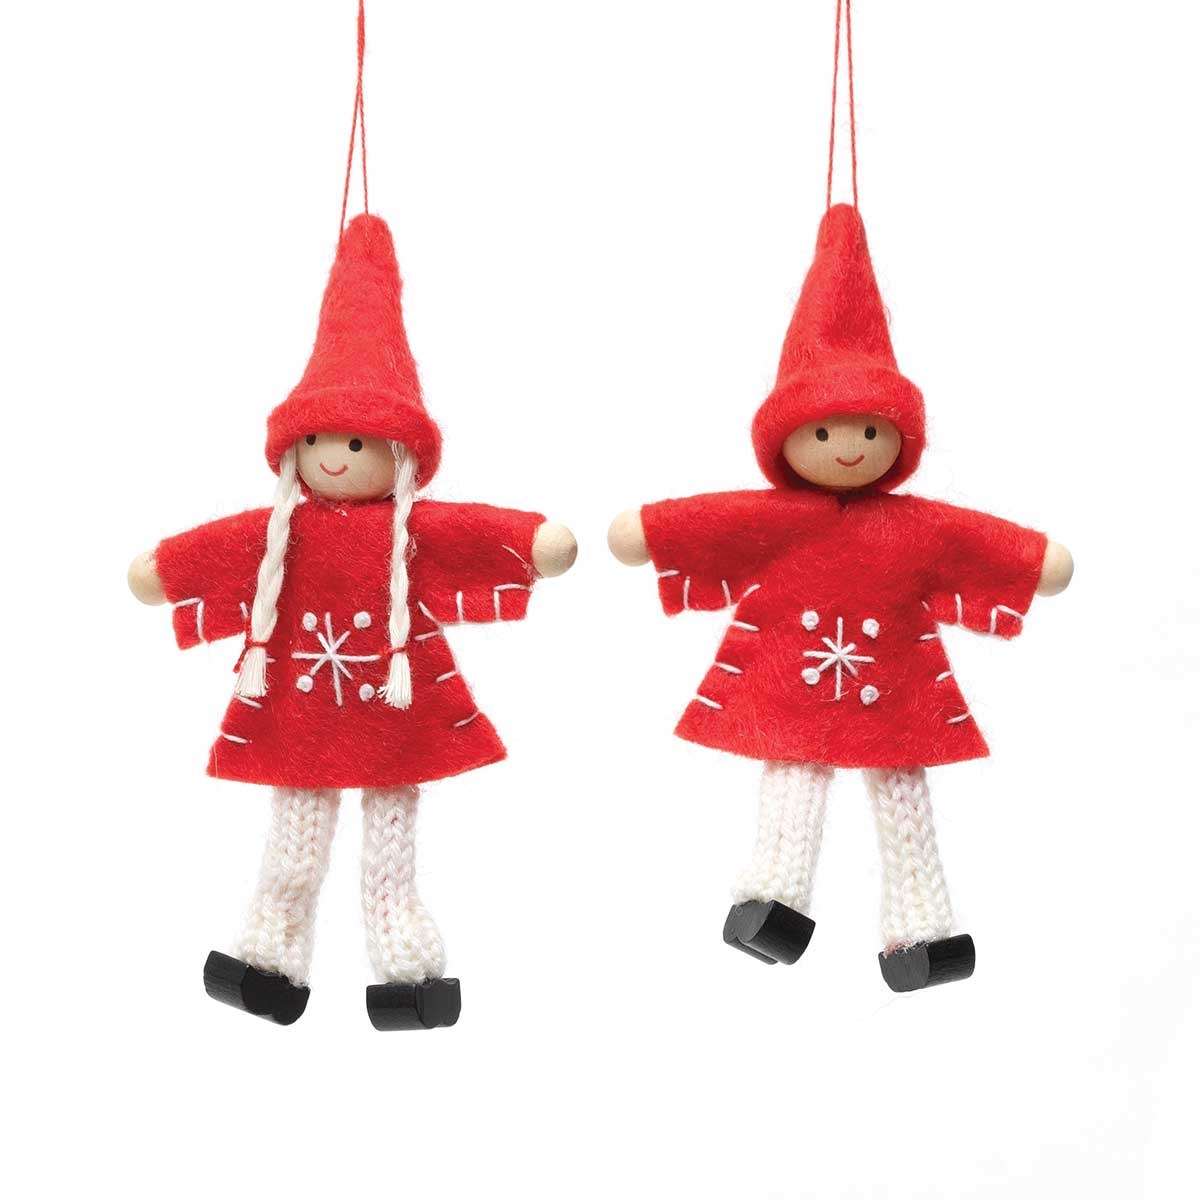 RED/GREY BOY & GIRL ORNAMENT